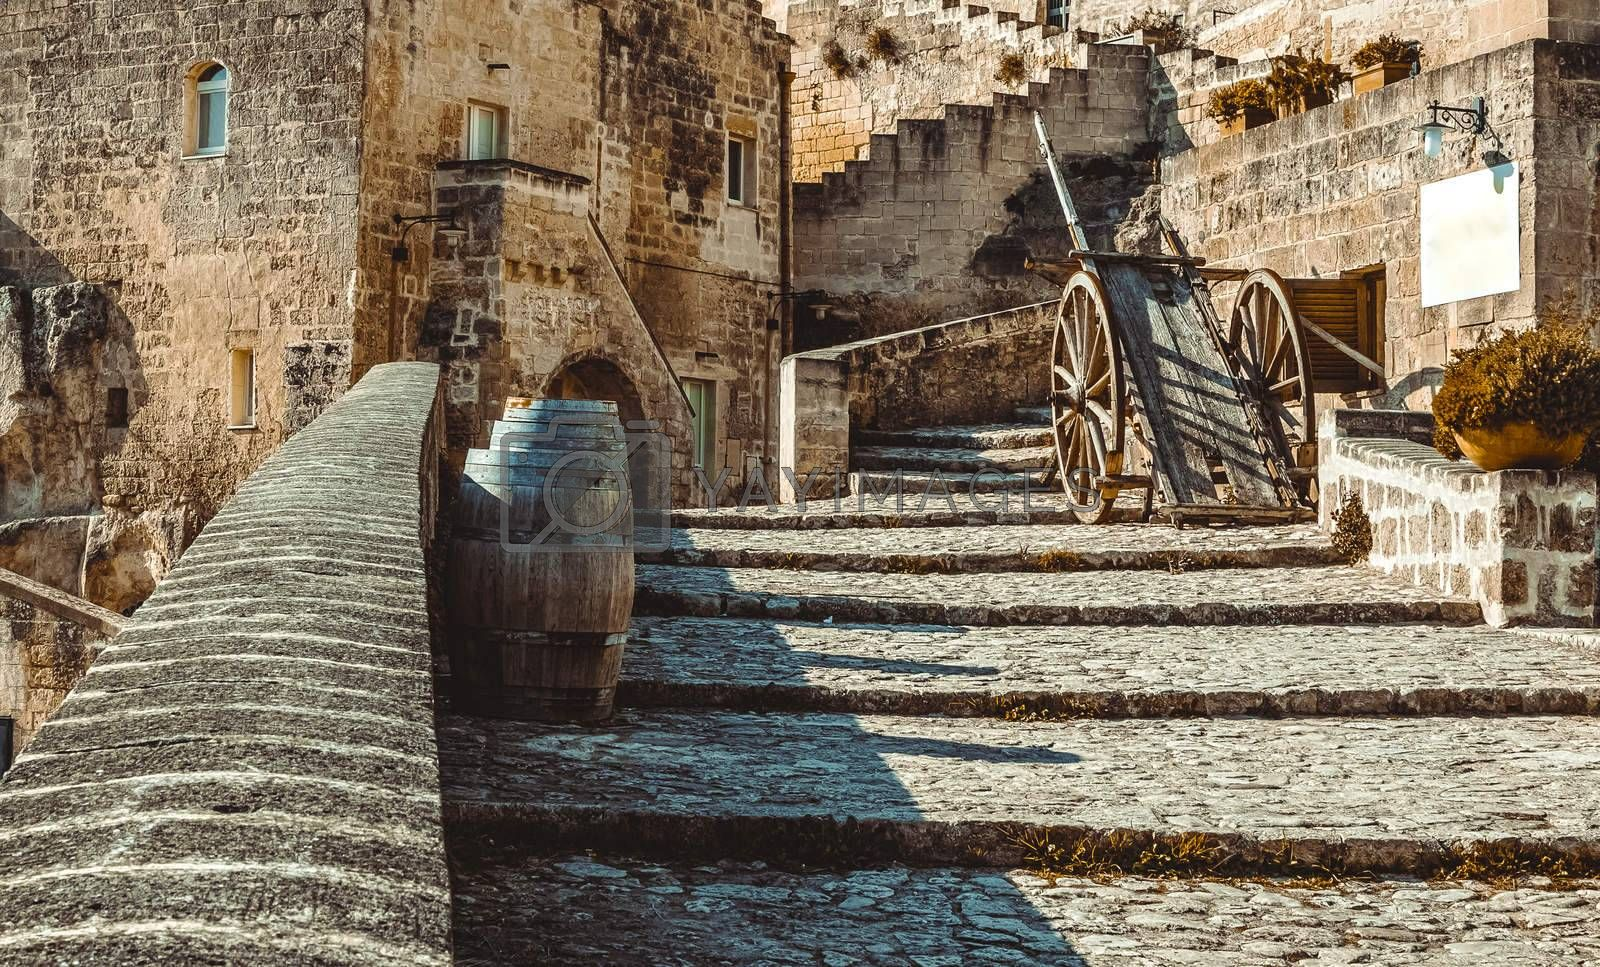 old historical scene with wood wagon and wine barrels typical tool used in the past, old style, in Matera, Italy UNESCO European Capital of Culture 2019